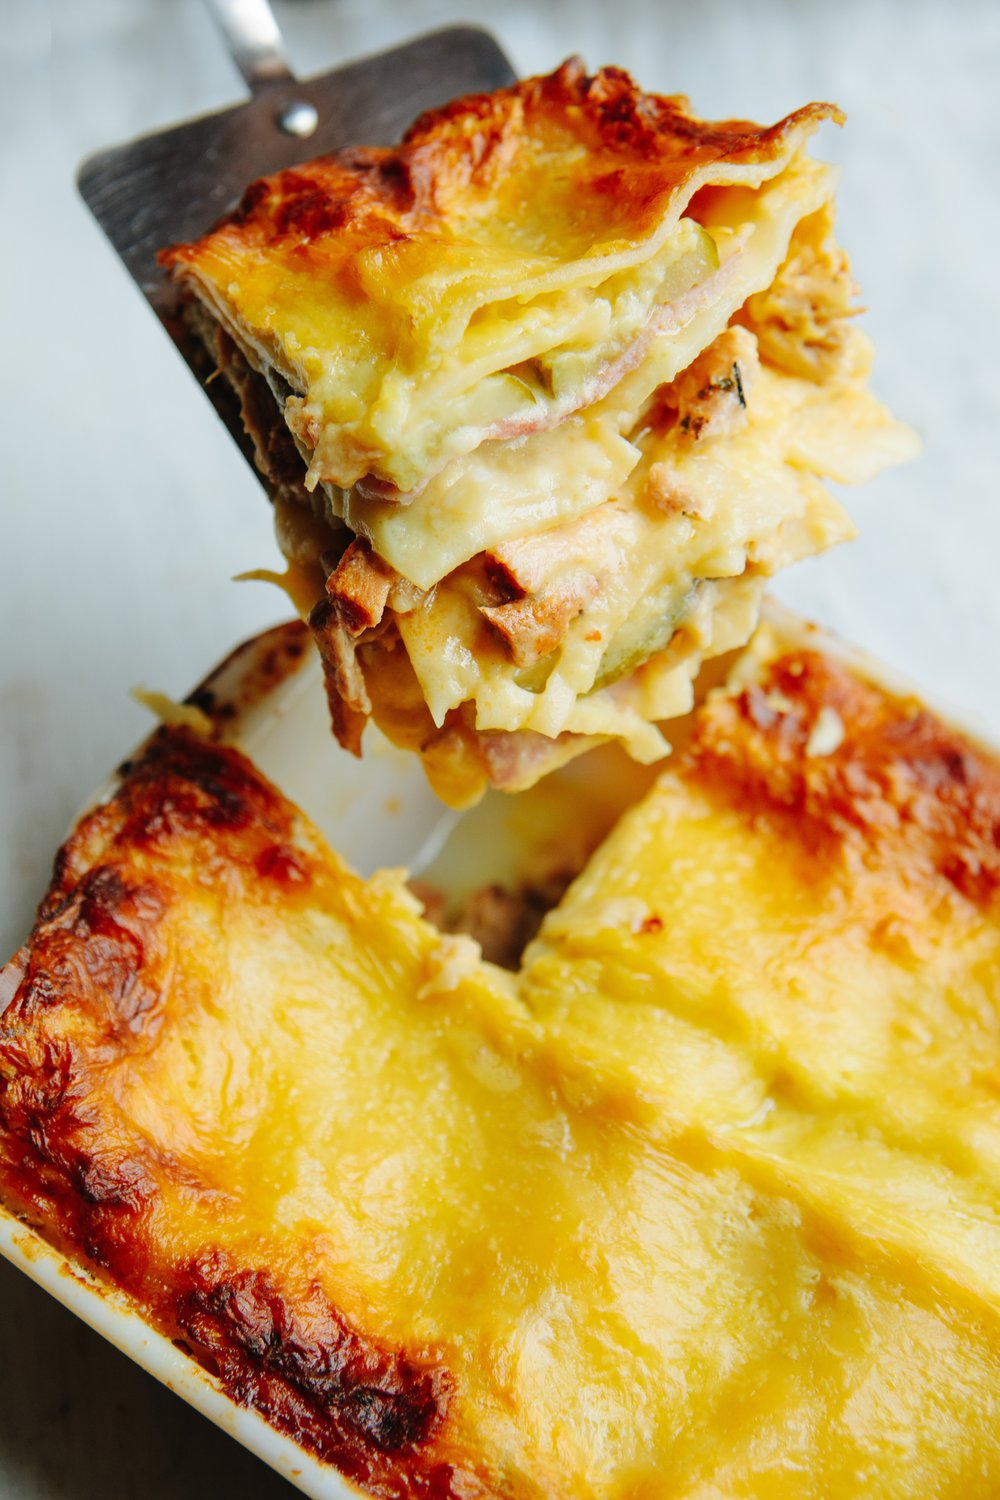 THE ART OF THE MASHUP_Cubano Mac and Cheese Lasagna_BRIAN SAMUELS PHOTOGRAPHY-6622.jpg